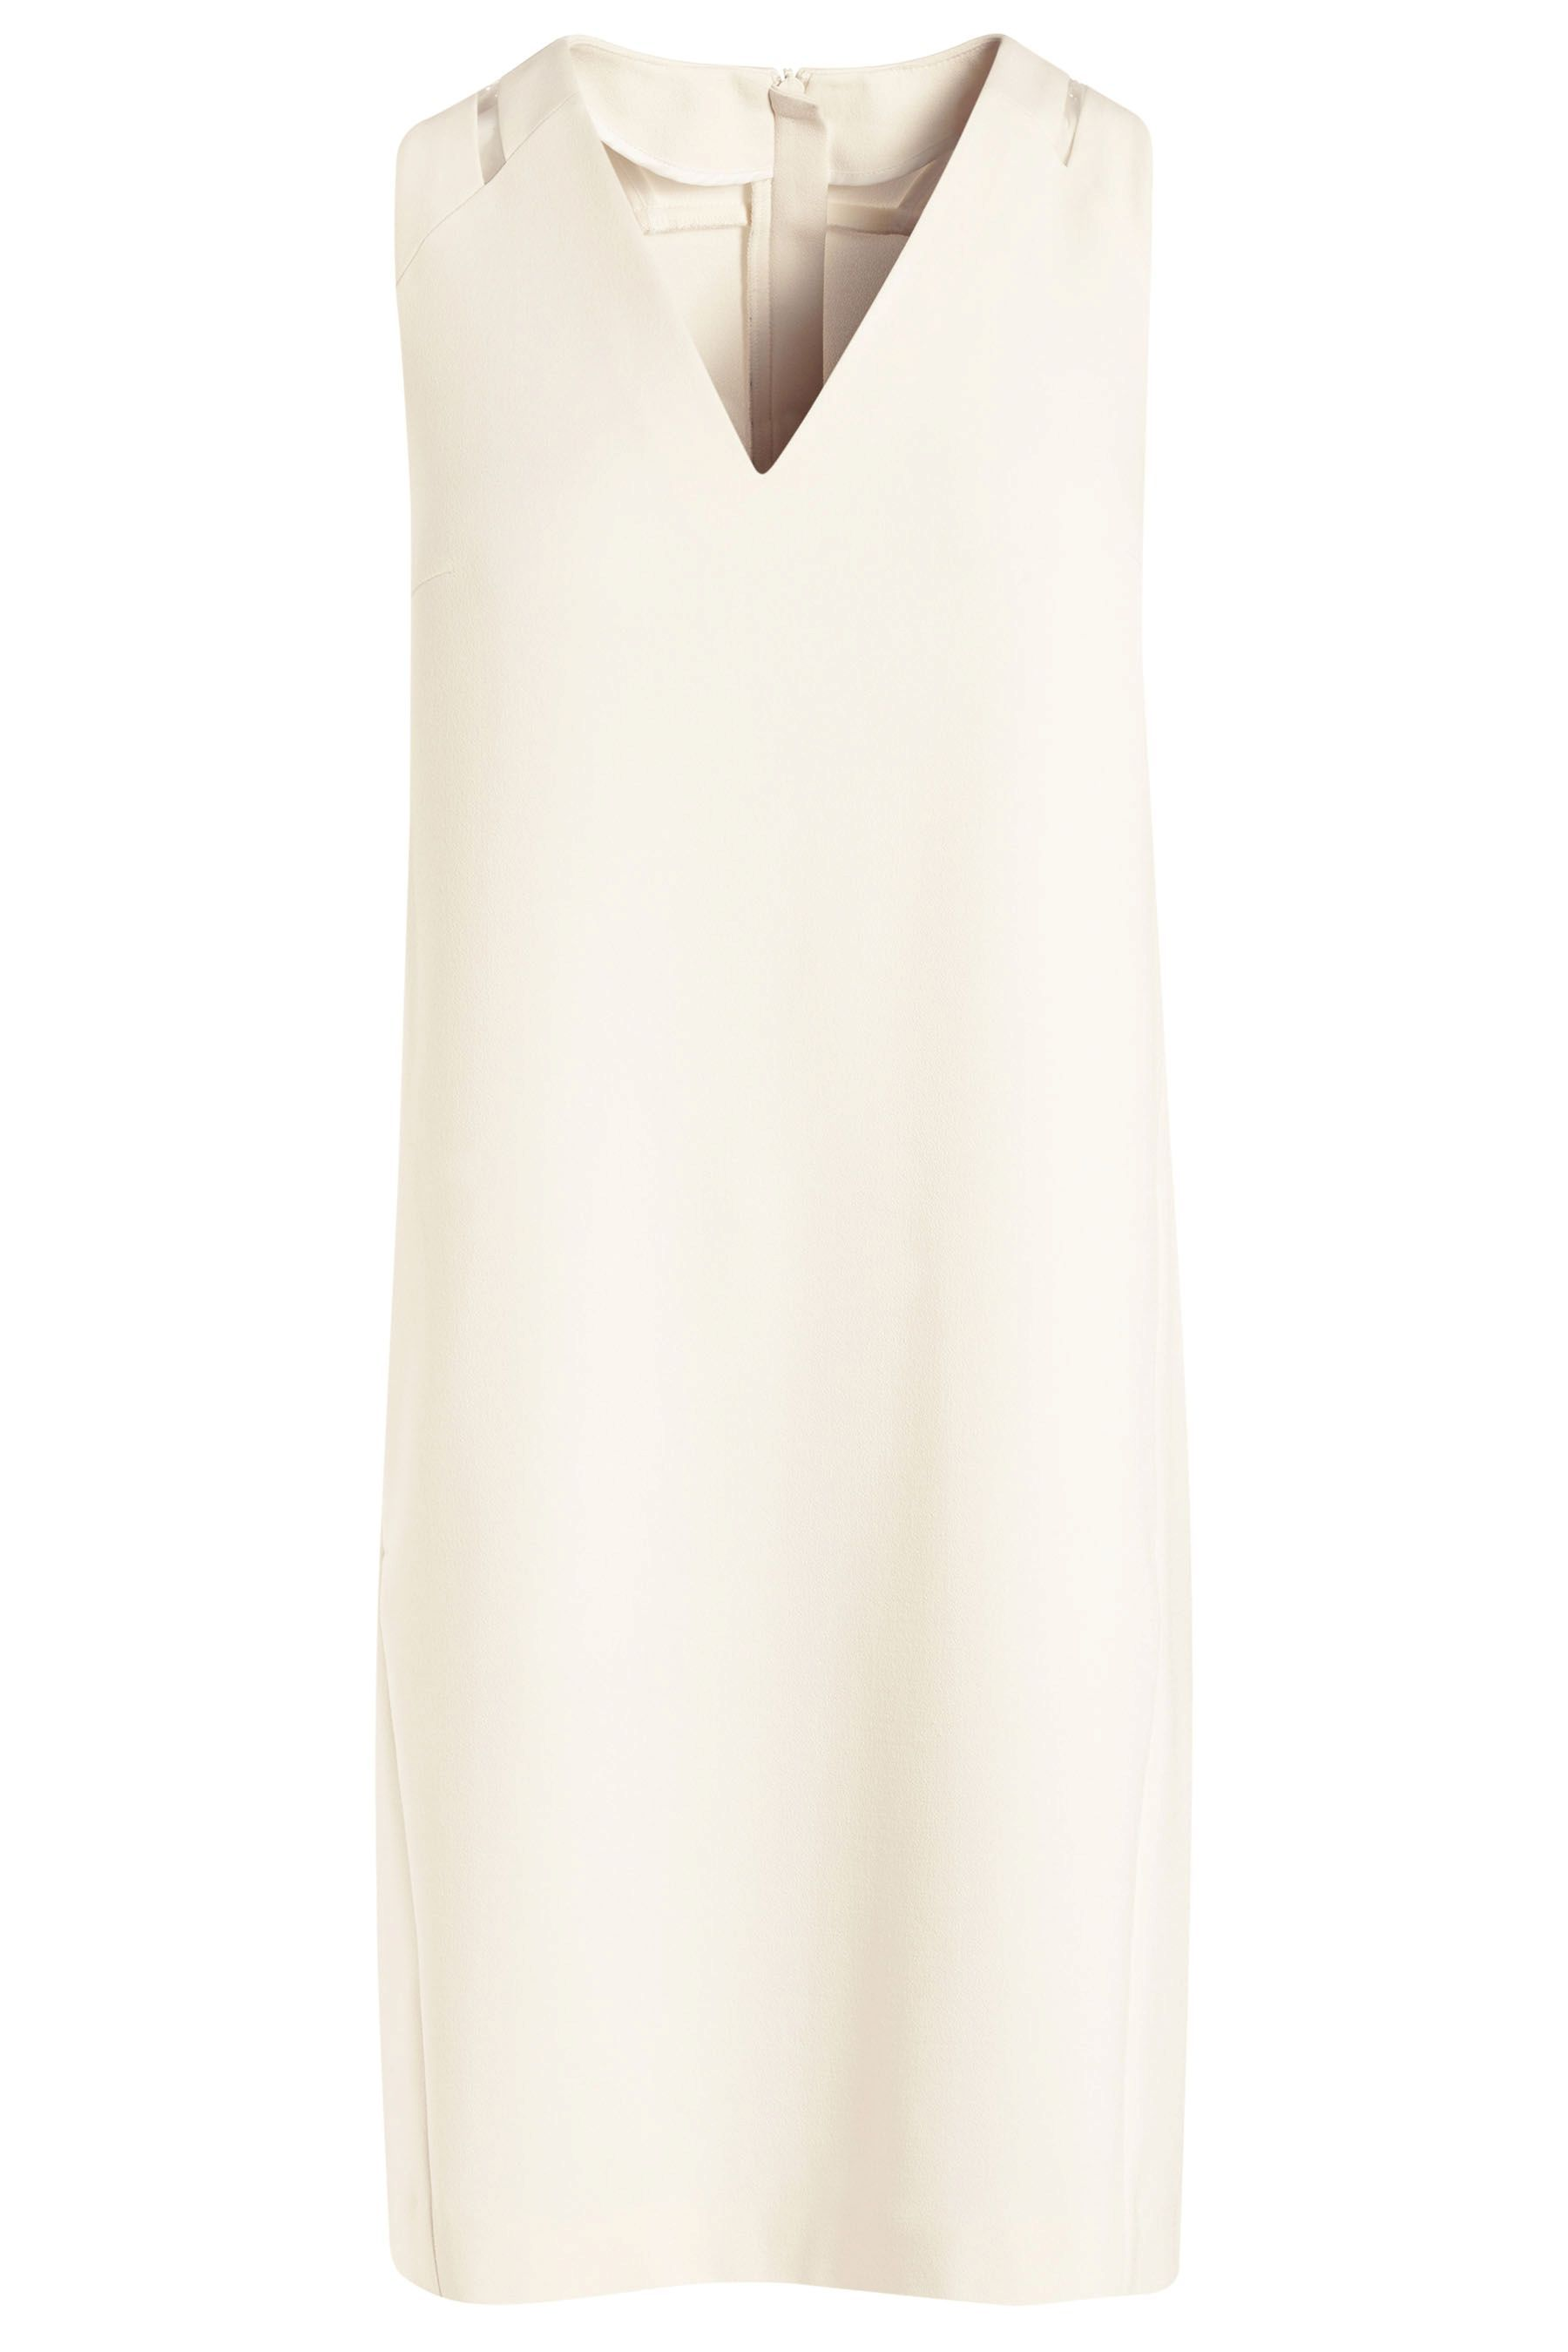 Buy Crepe Detail Dress from Next